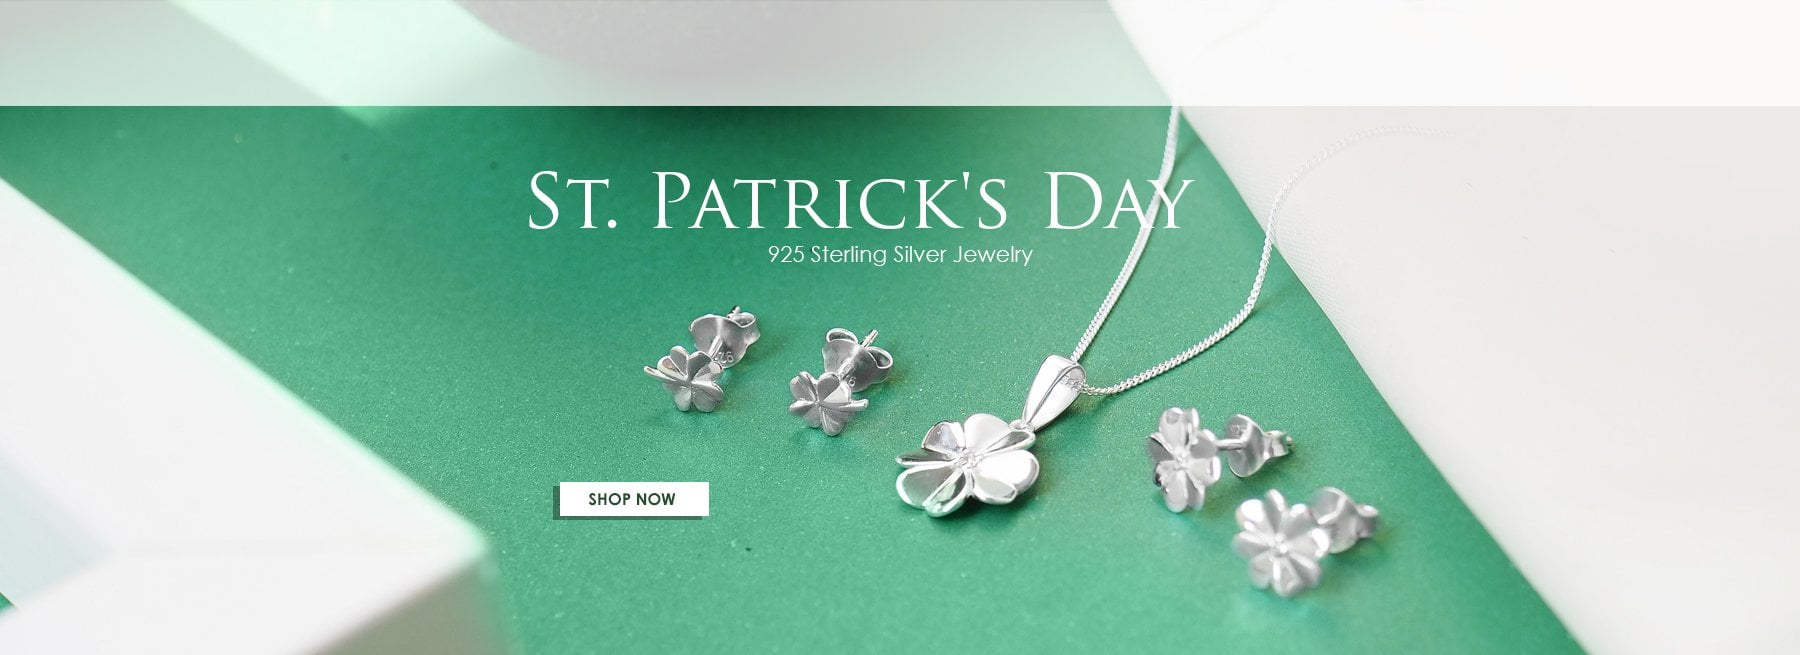 St Patricks Day 925 Sterling Silver Jewelry Wholesale